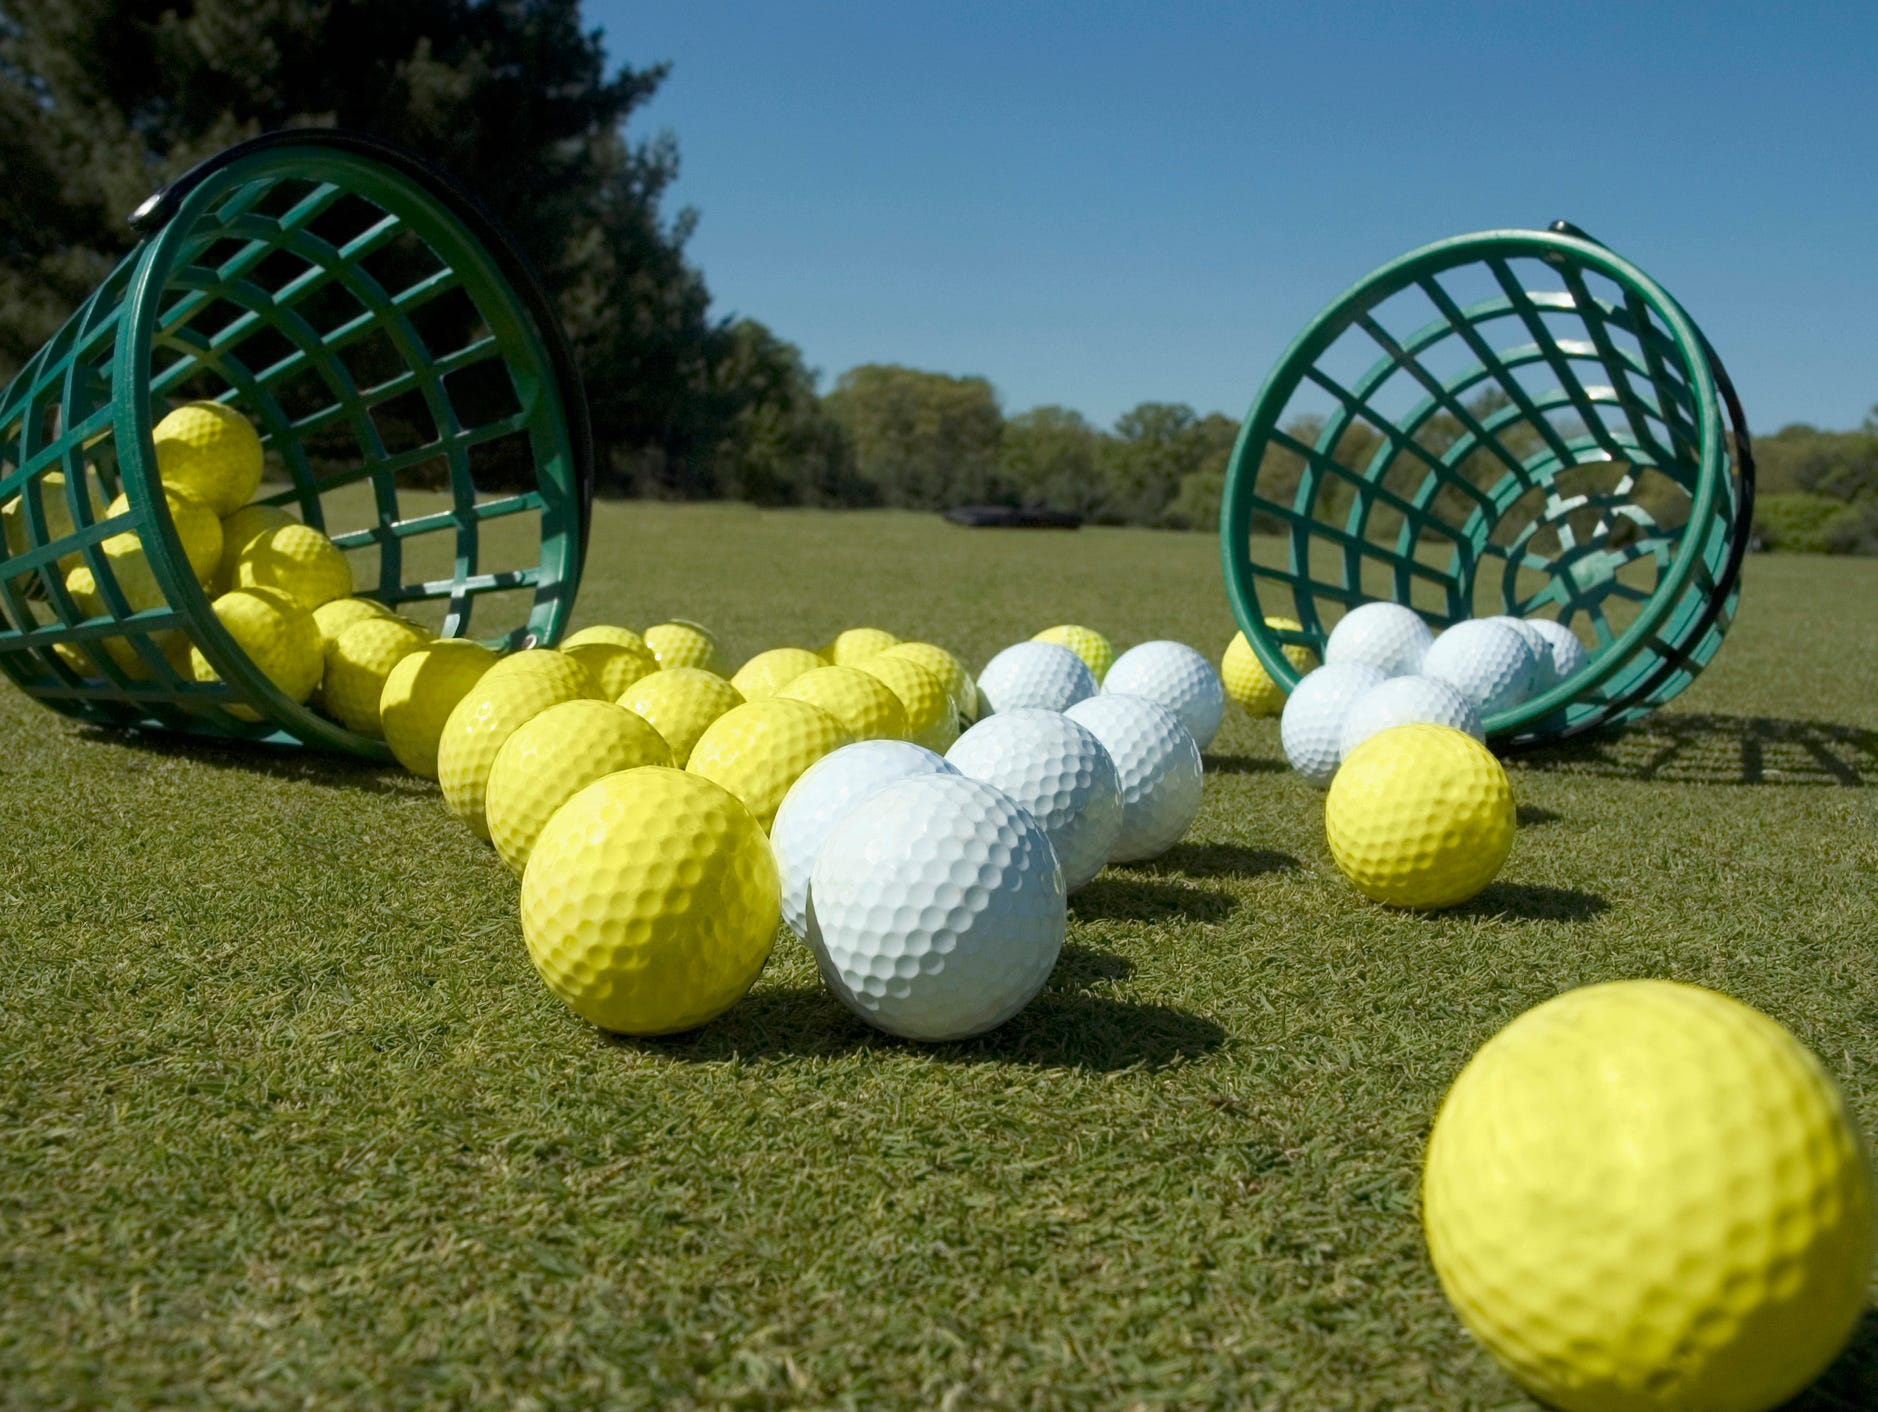 Golf World Discount Shop and Driving Range is offering Insiders a BOGO offer.